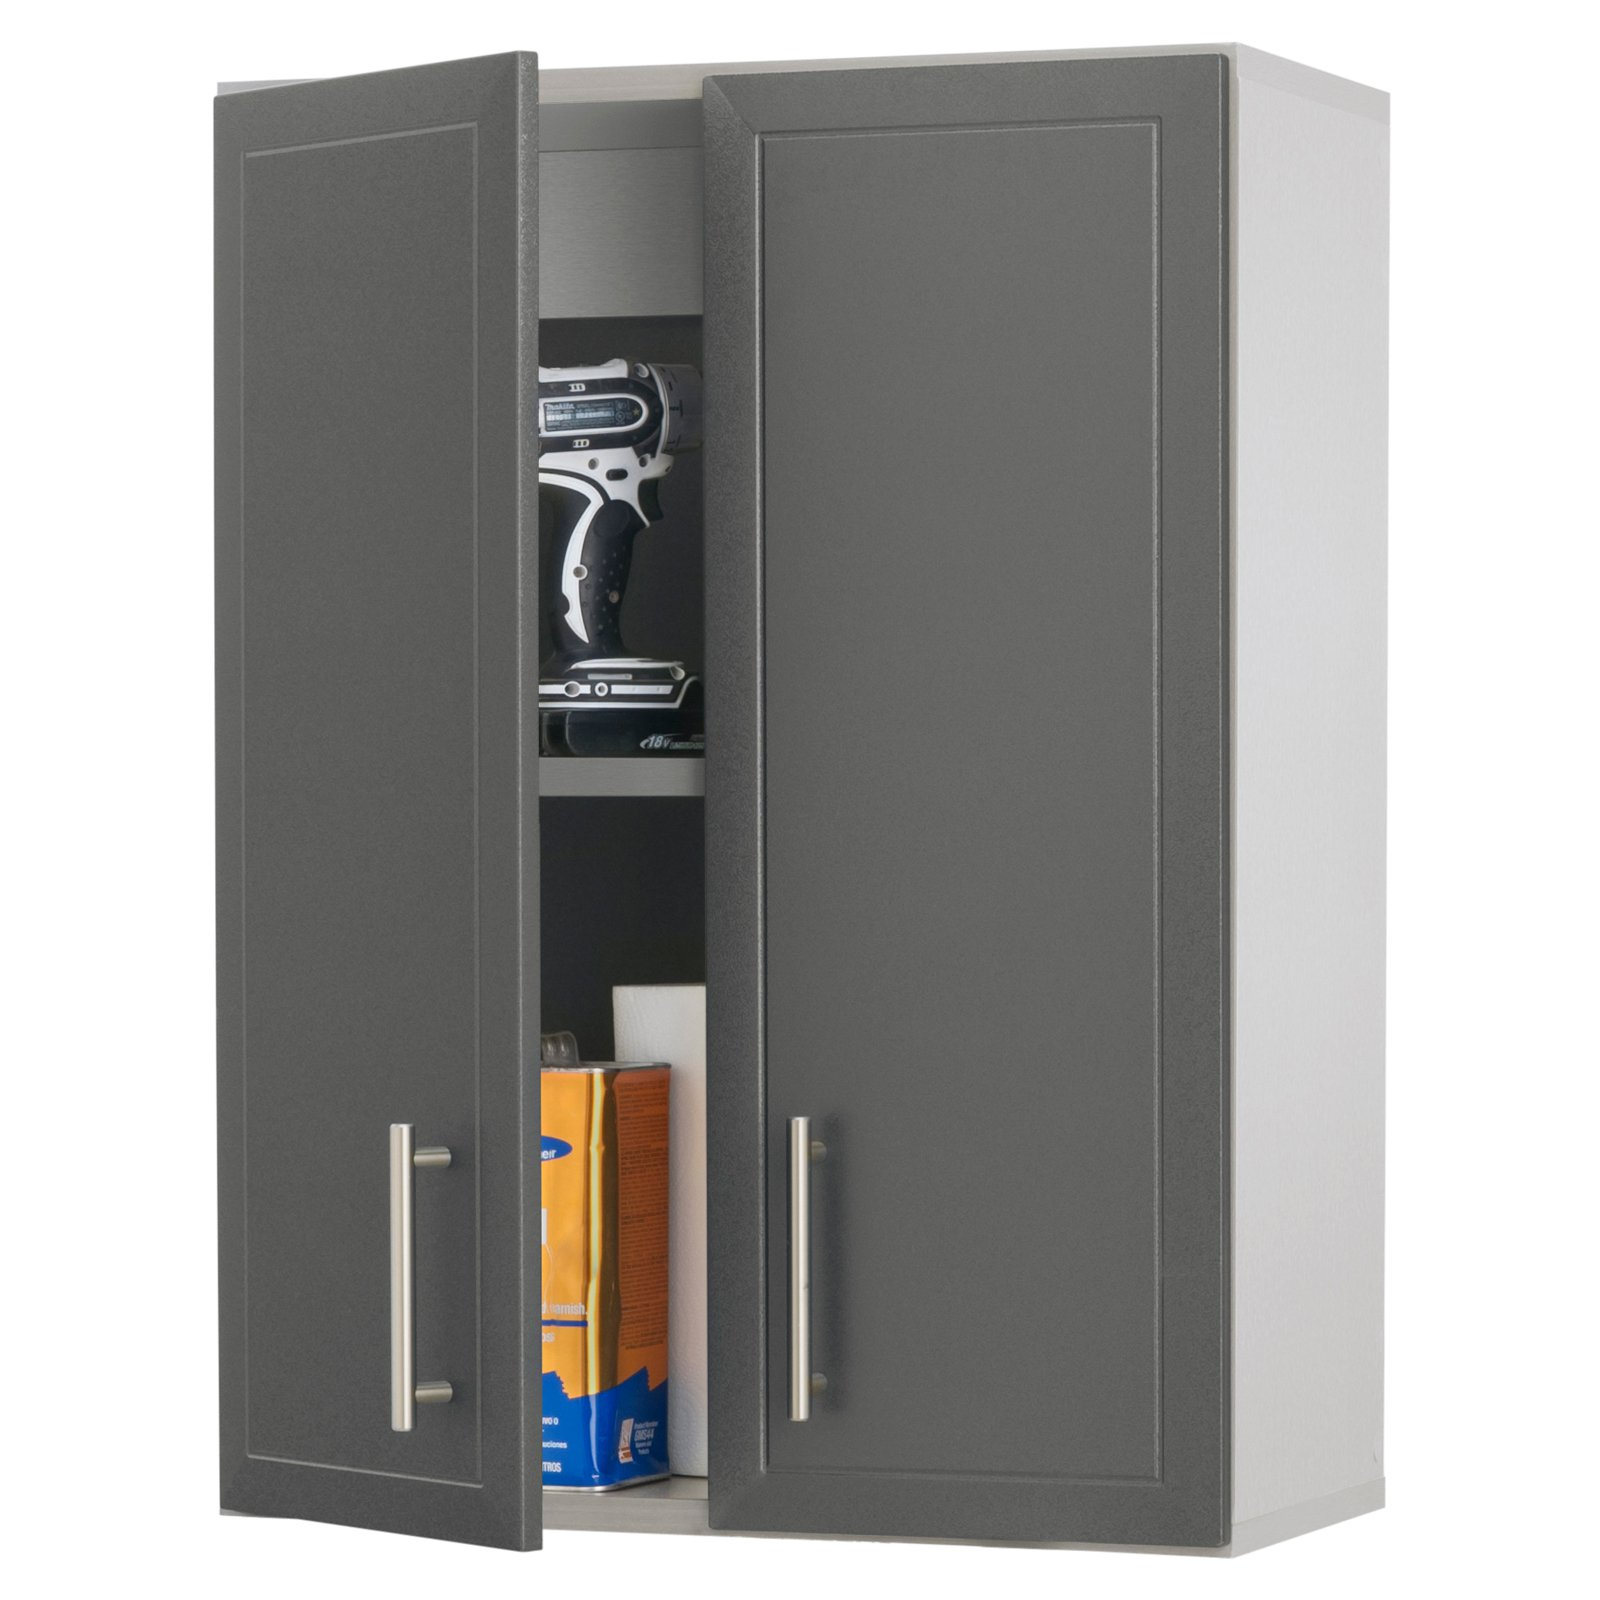 ClosetMaid ProGarage 2 Door Wall Cabinet